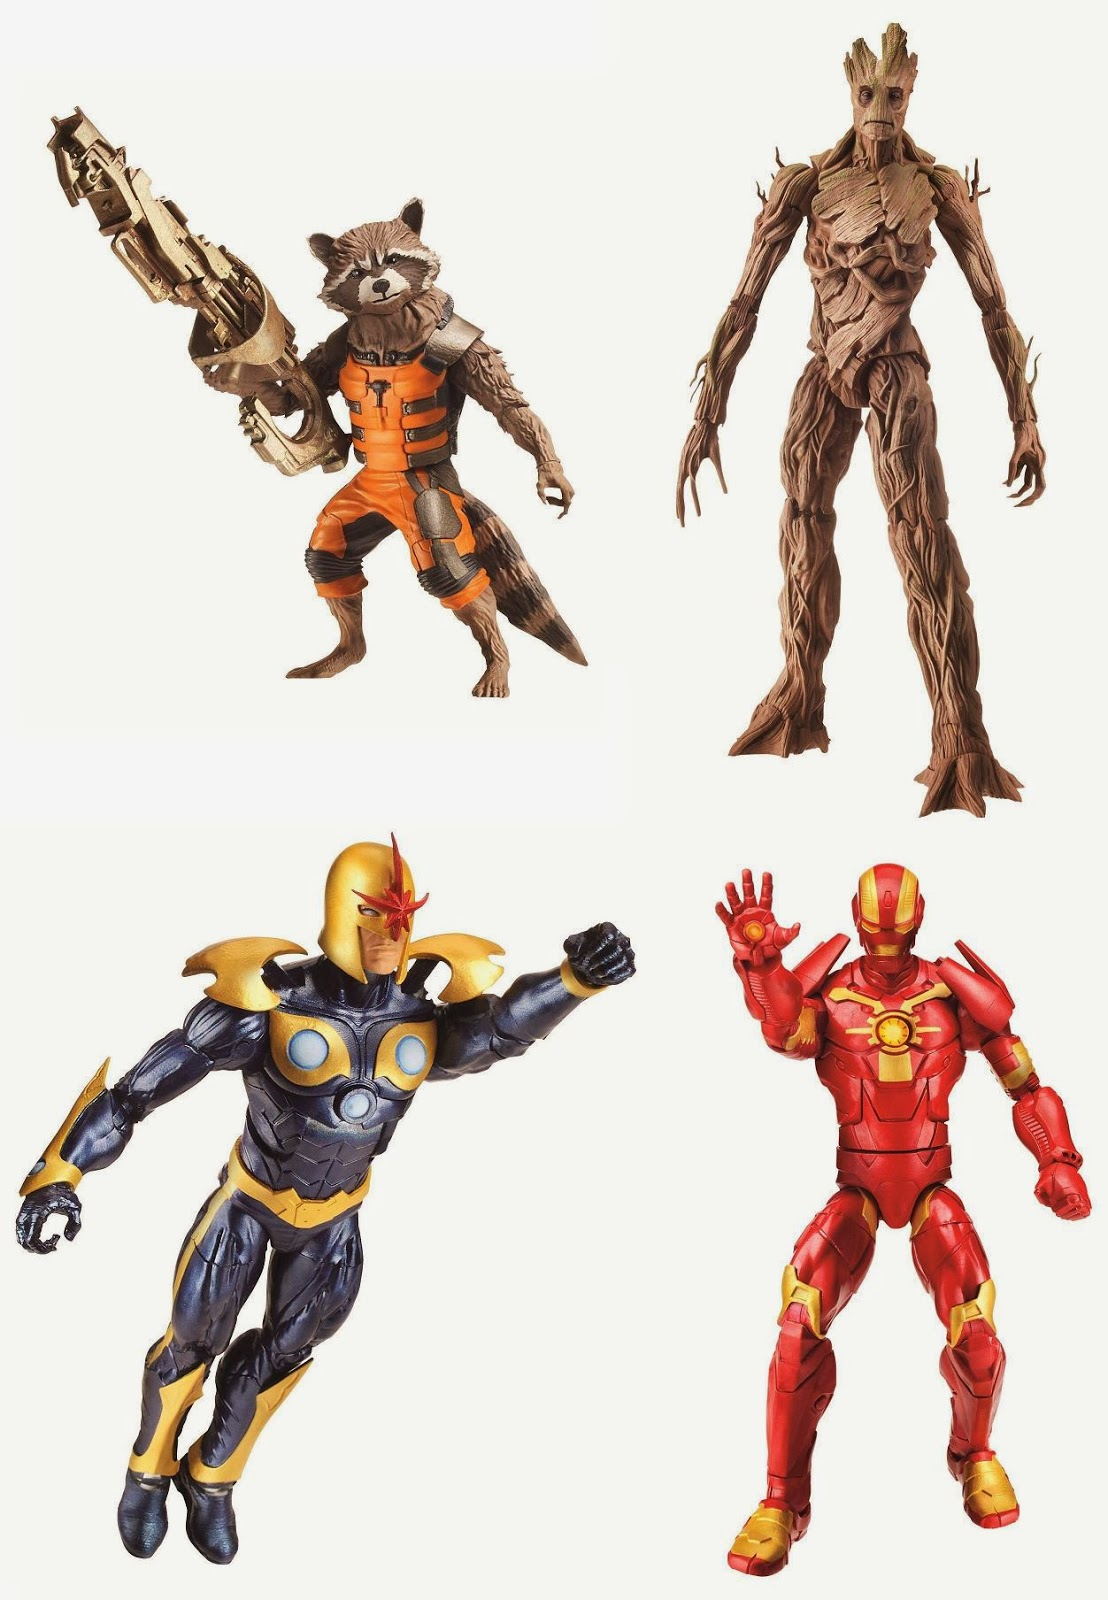 Guardians of the Galaxy Marvel Legends Infinite Series Action Figures - Rocket Raccoon, Groot, Nova & Iron Man